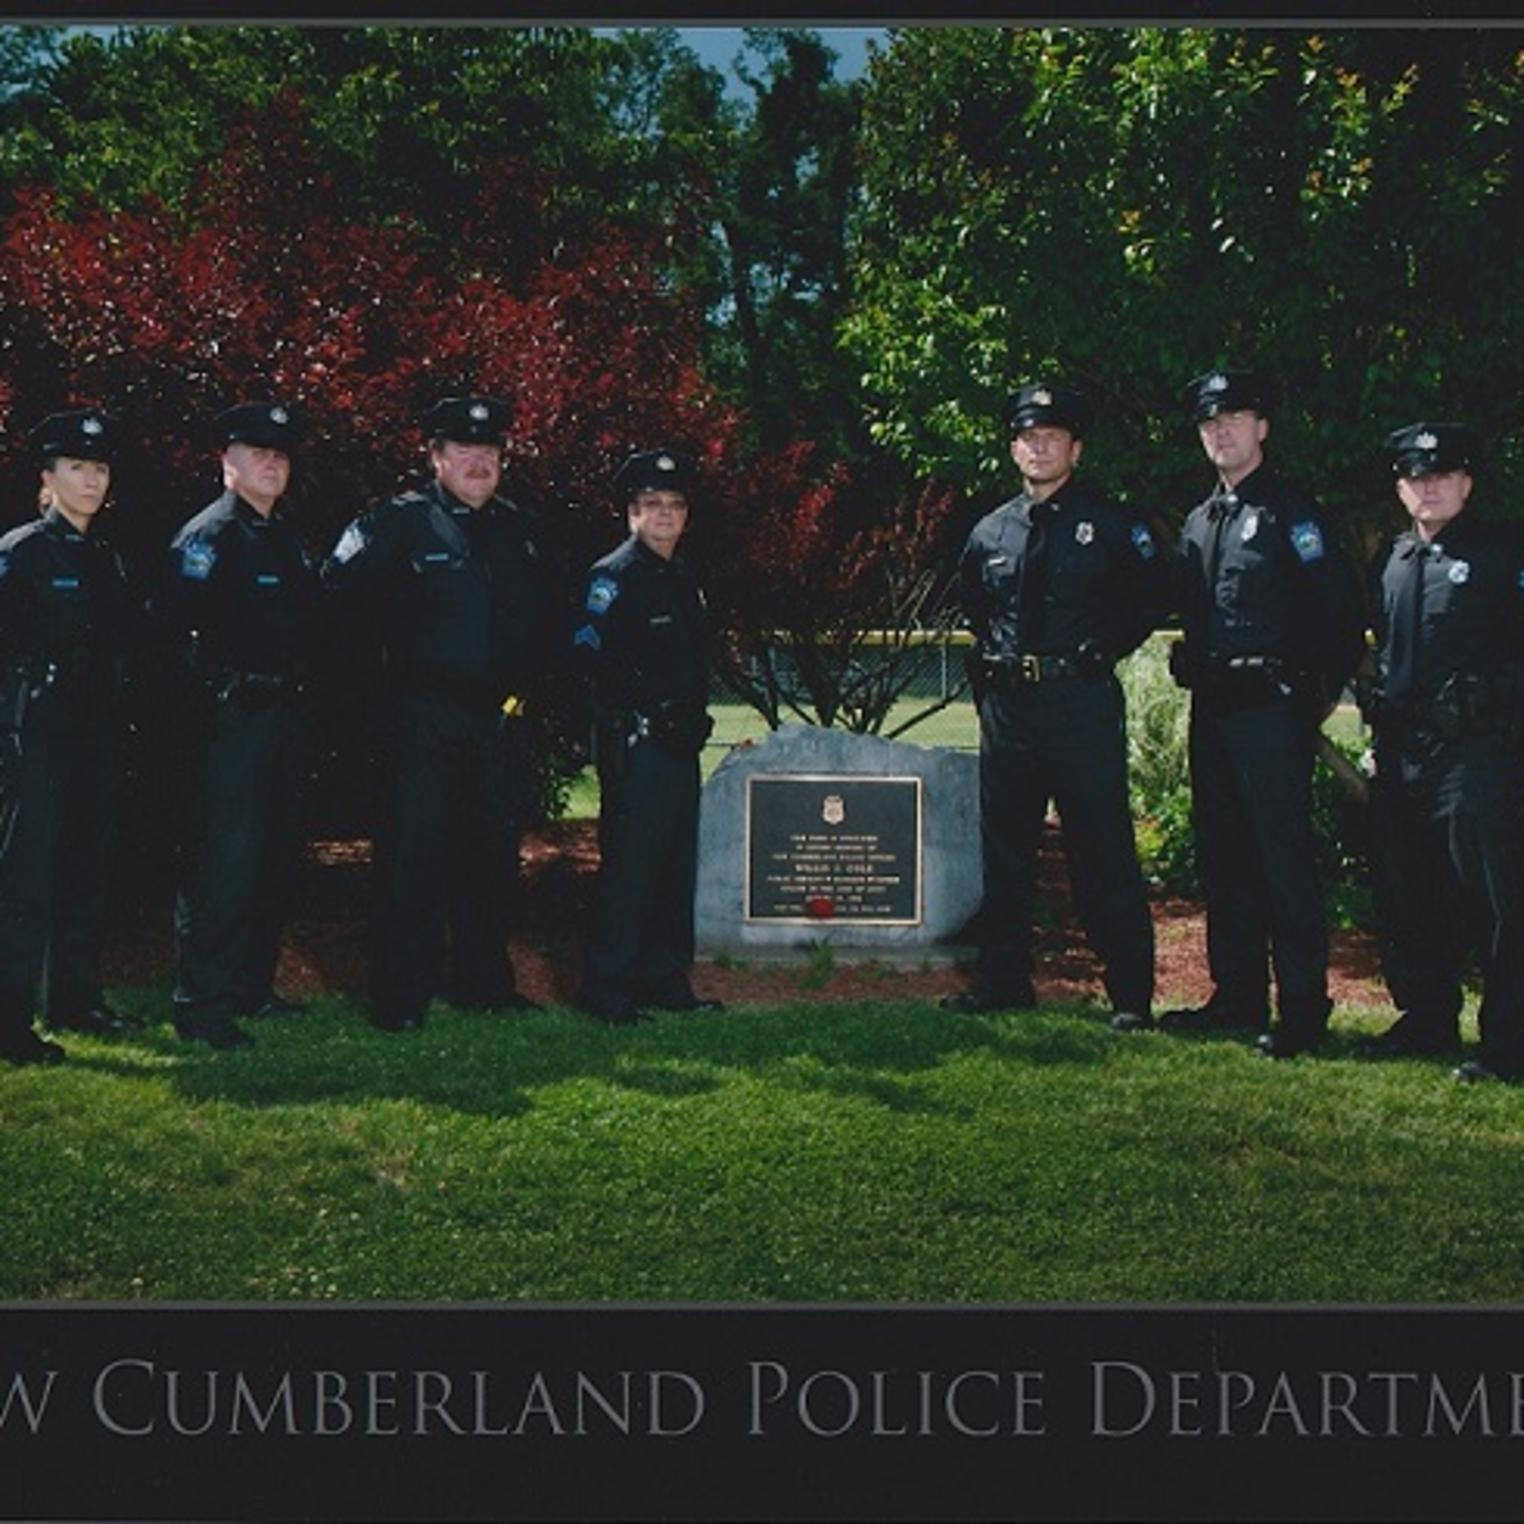 New Cumberland Police Department